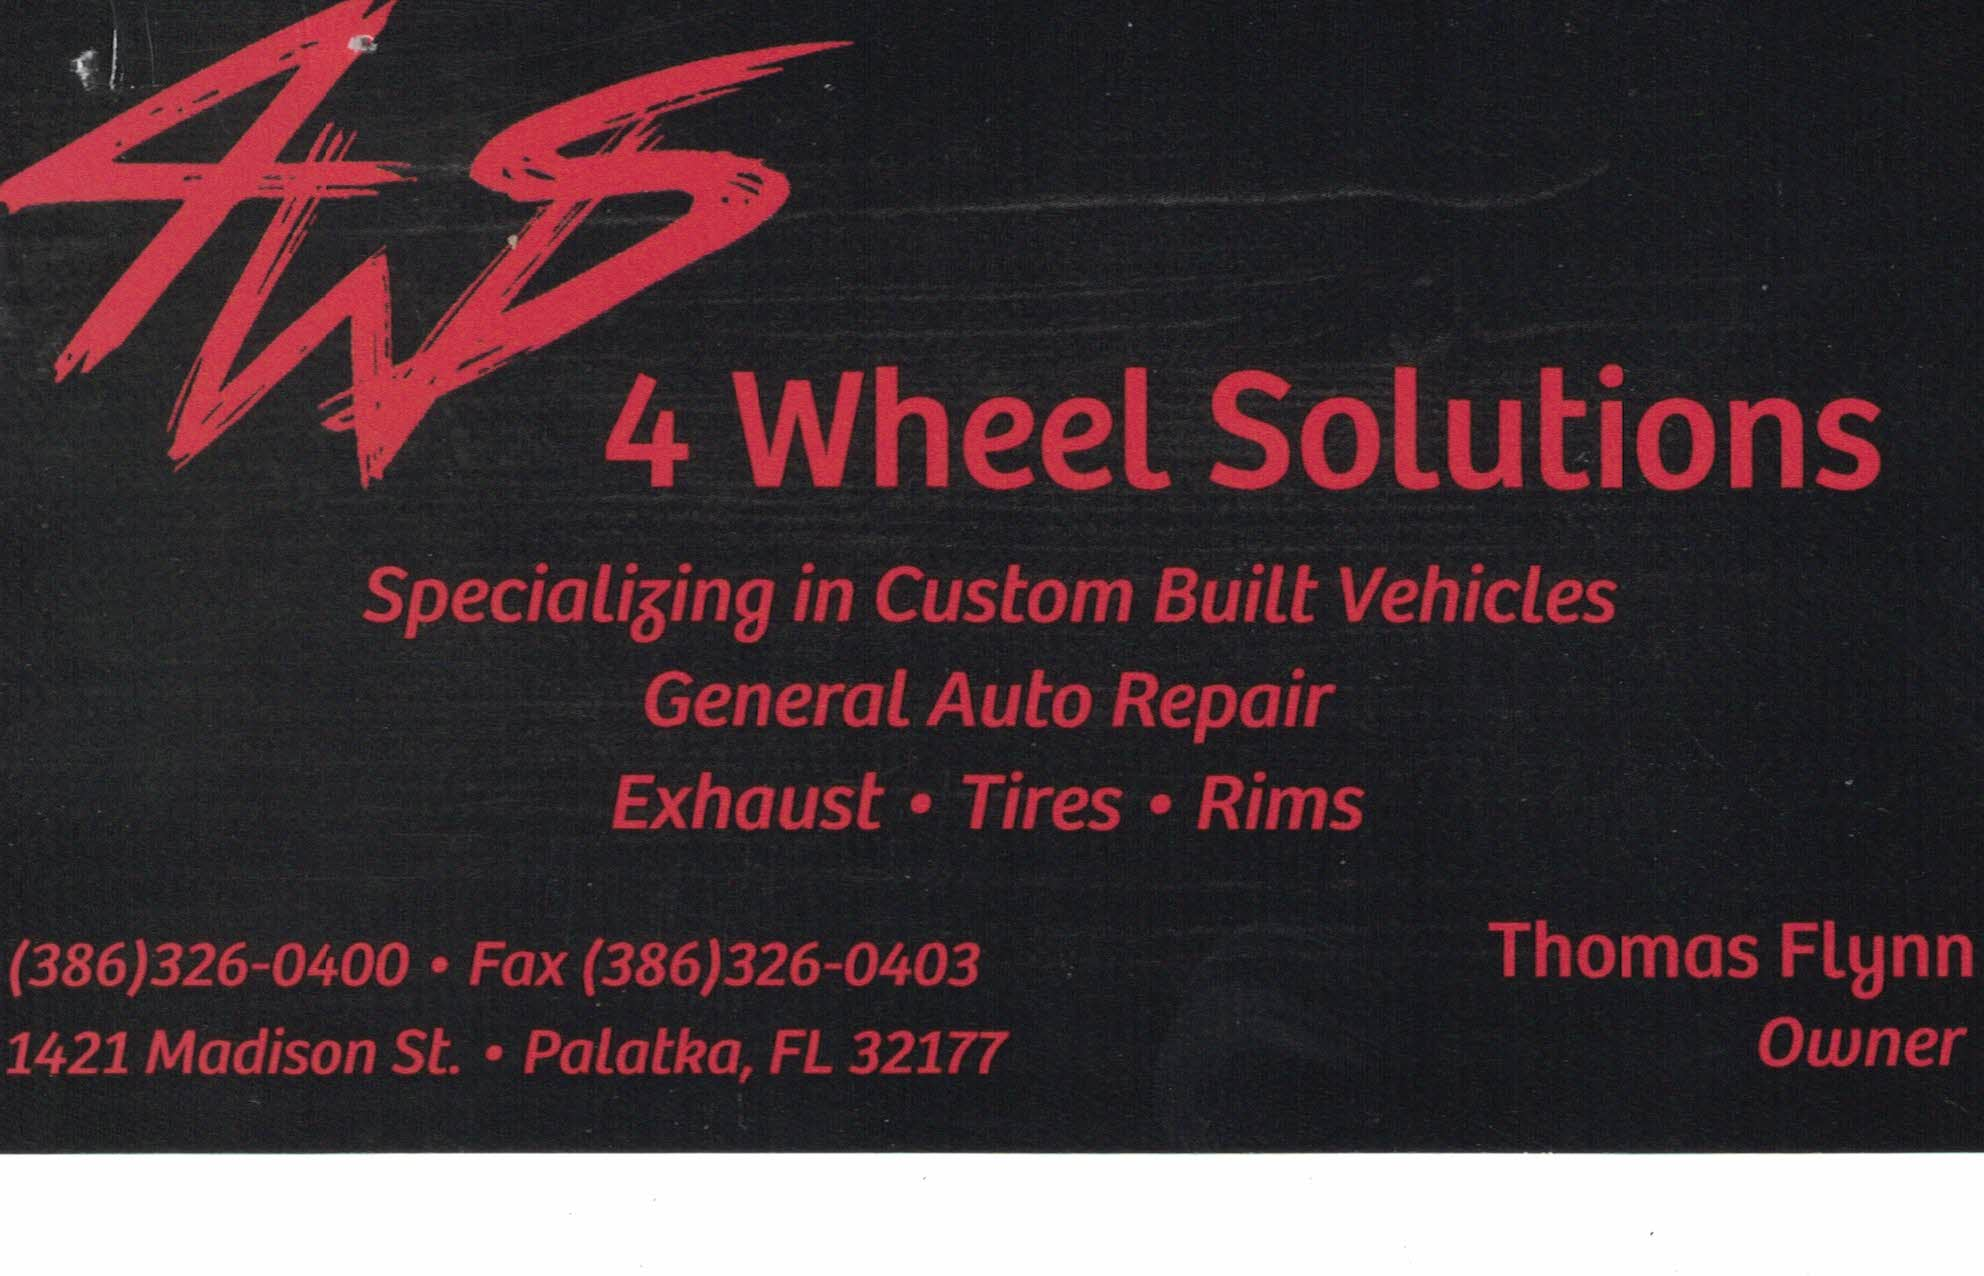 4WheelSolutions